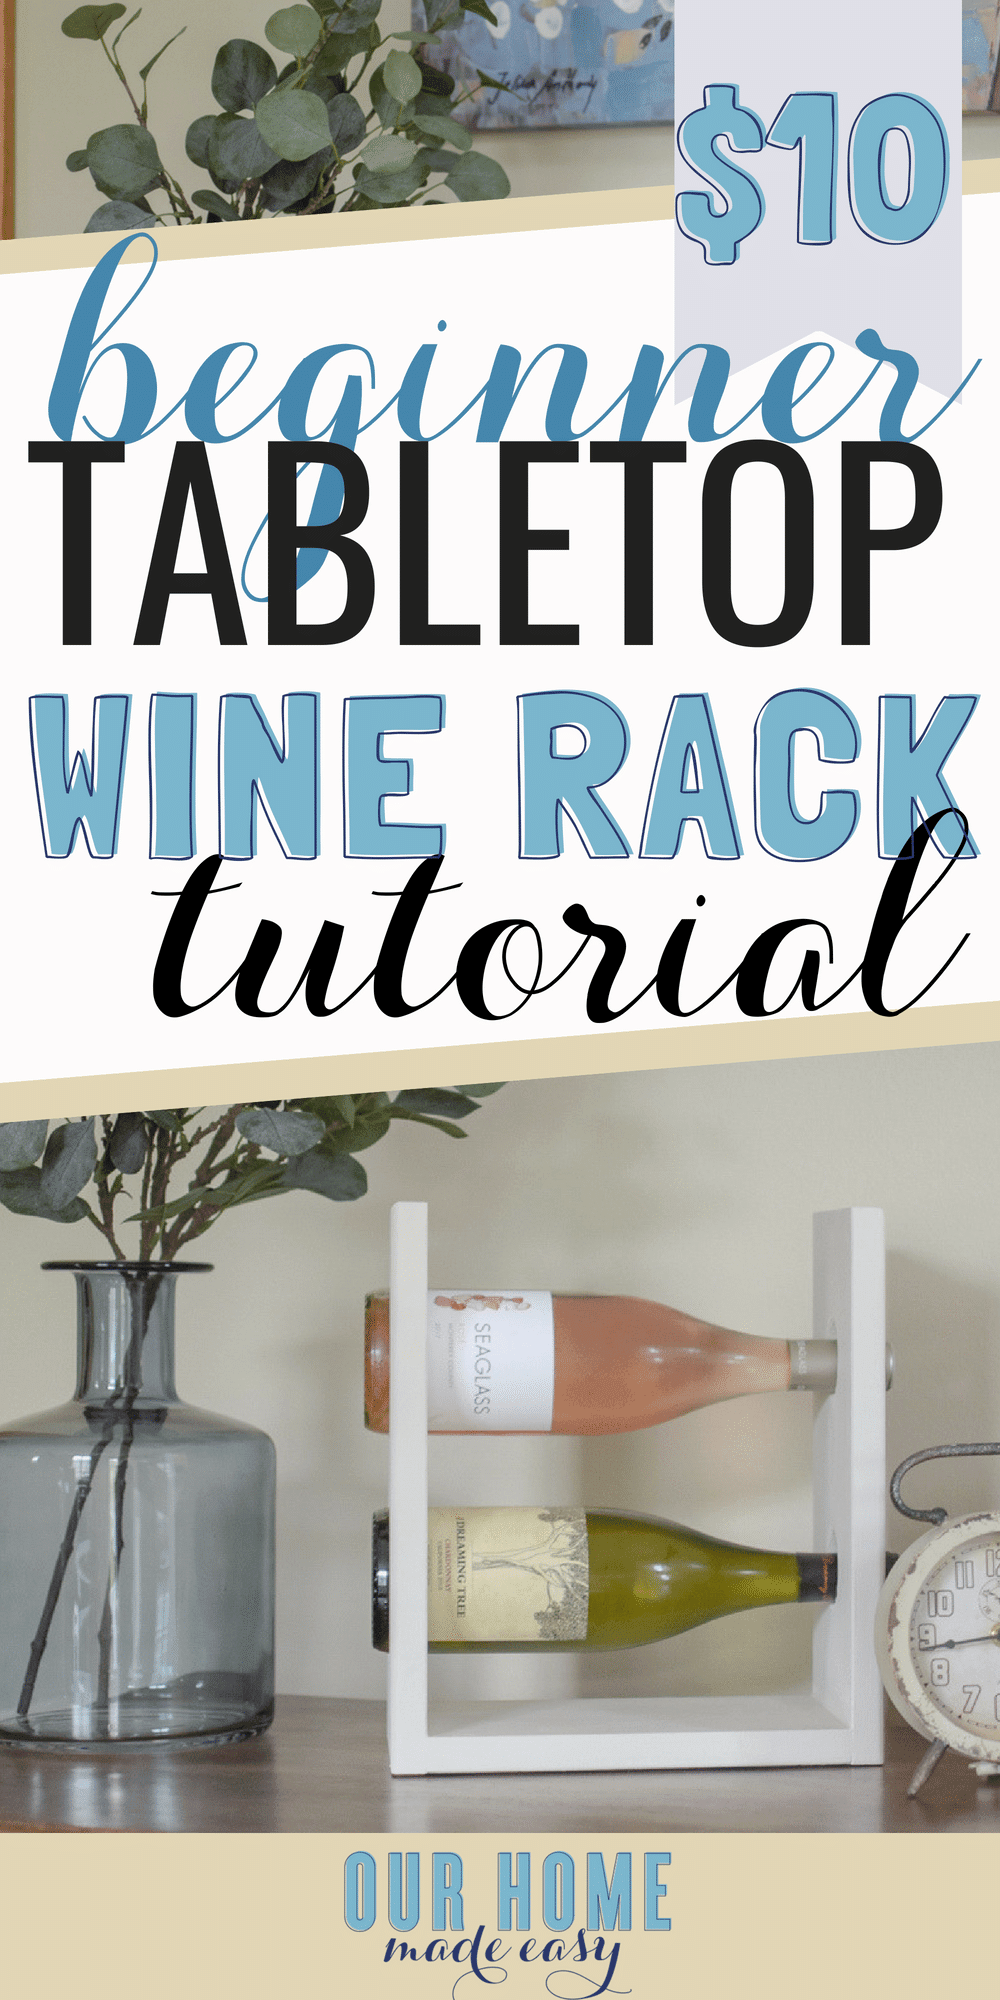 This DIY wine rack is perfect for holding 2 bottles on a table top! Simply use your Kreg Jig and a few other tools to build it for just a few dollars!#wine #DIY #home #winerack #homeproject